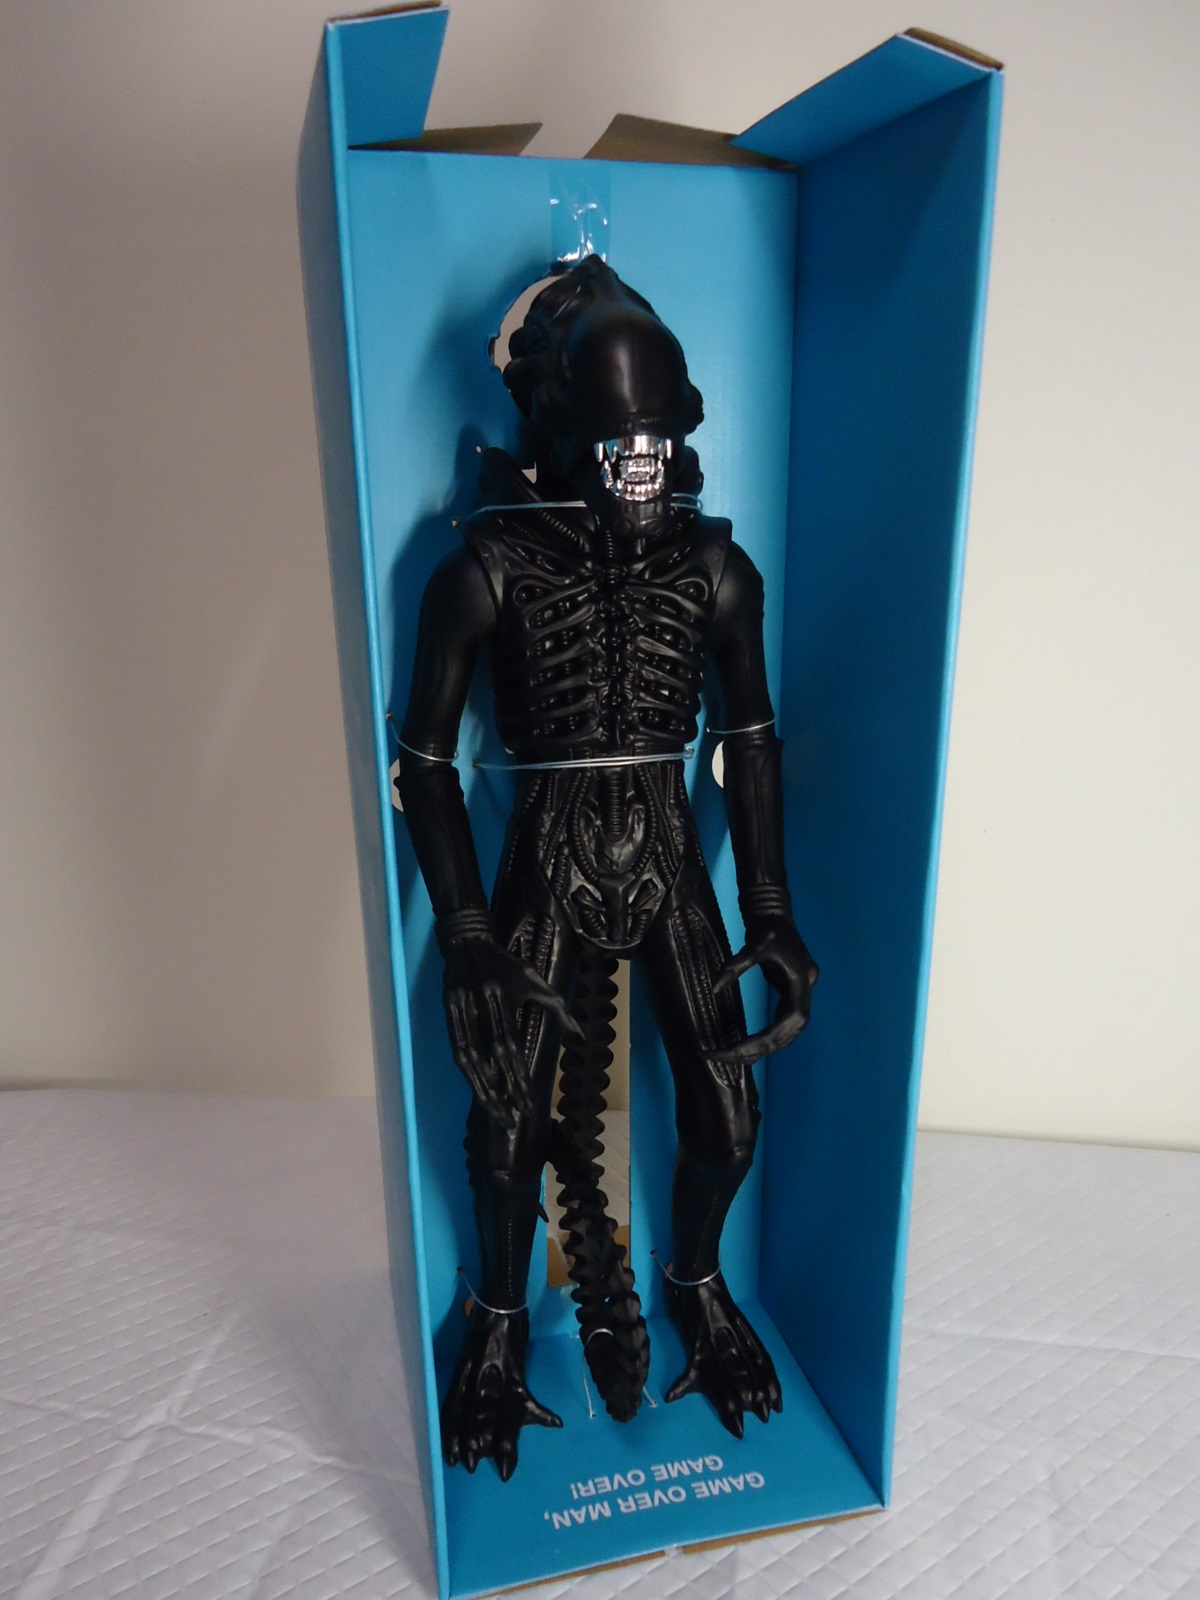 Blue Insert Packaging of the Super 7 1986 'Classic Toy' Edition with Twist Ties Holdling Figure in Place.